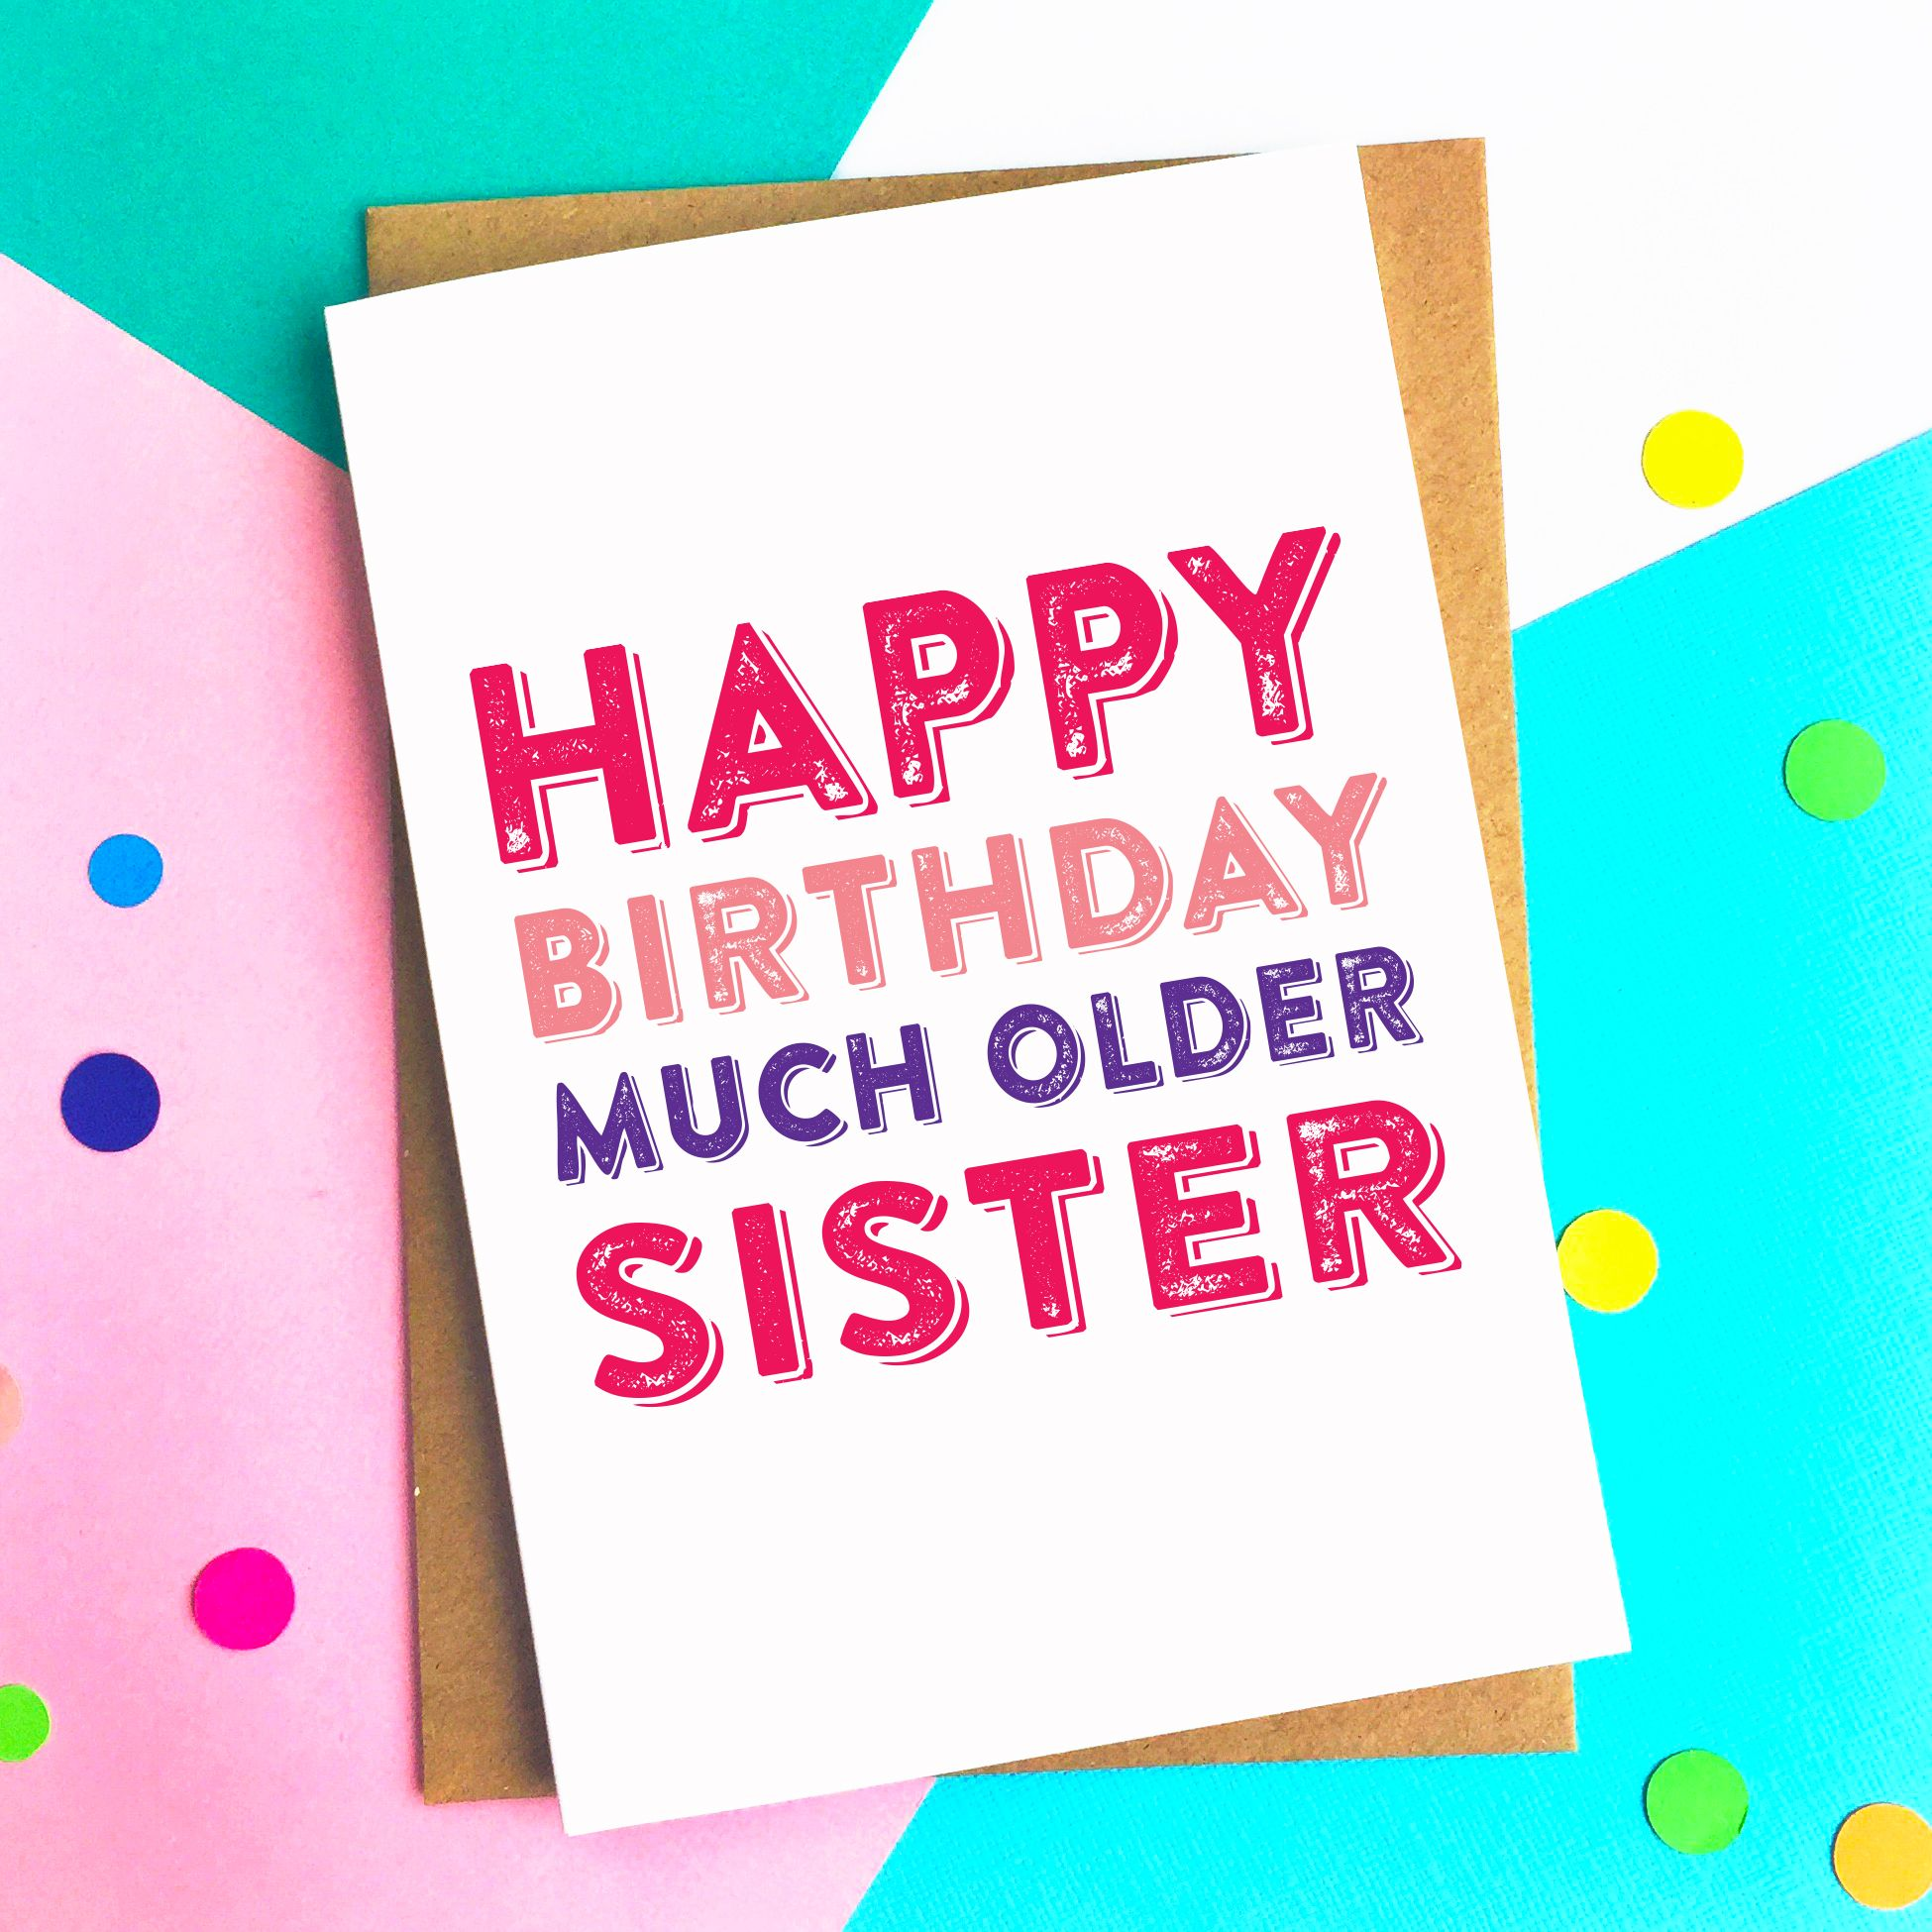 Remind your sister she is older. Much older. Happy